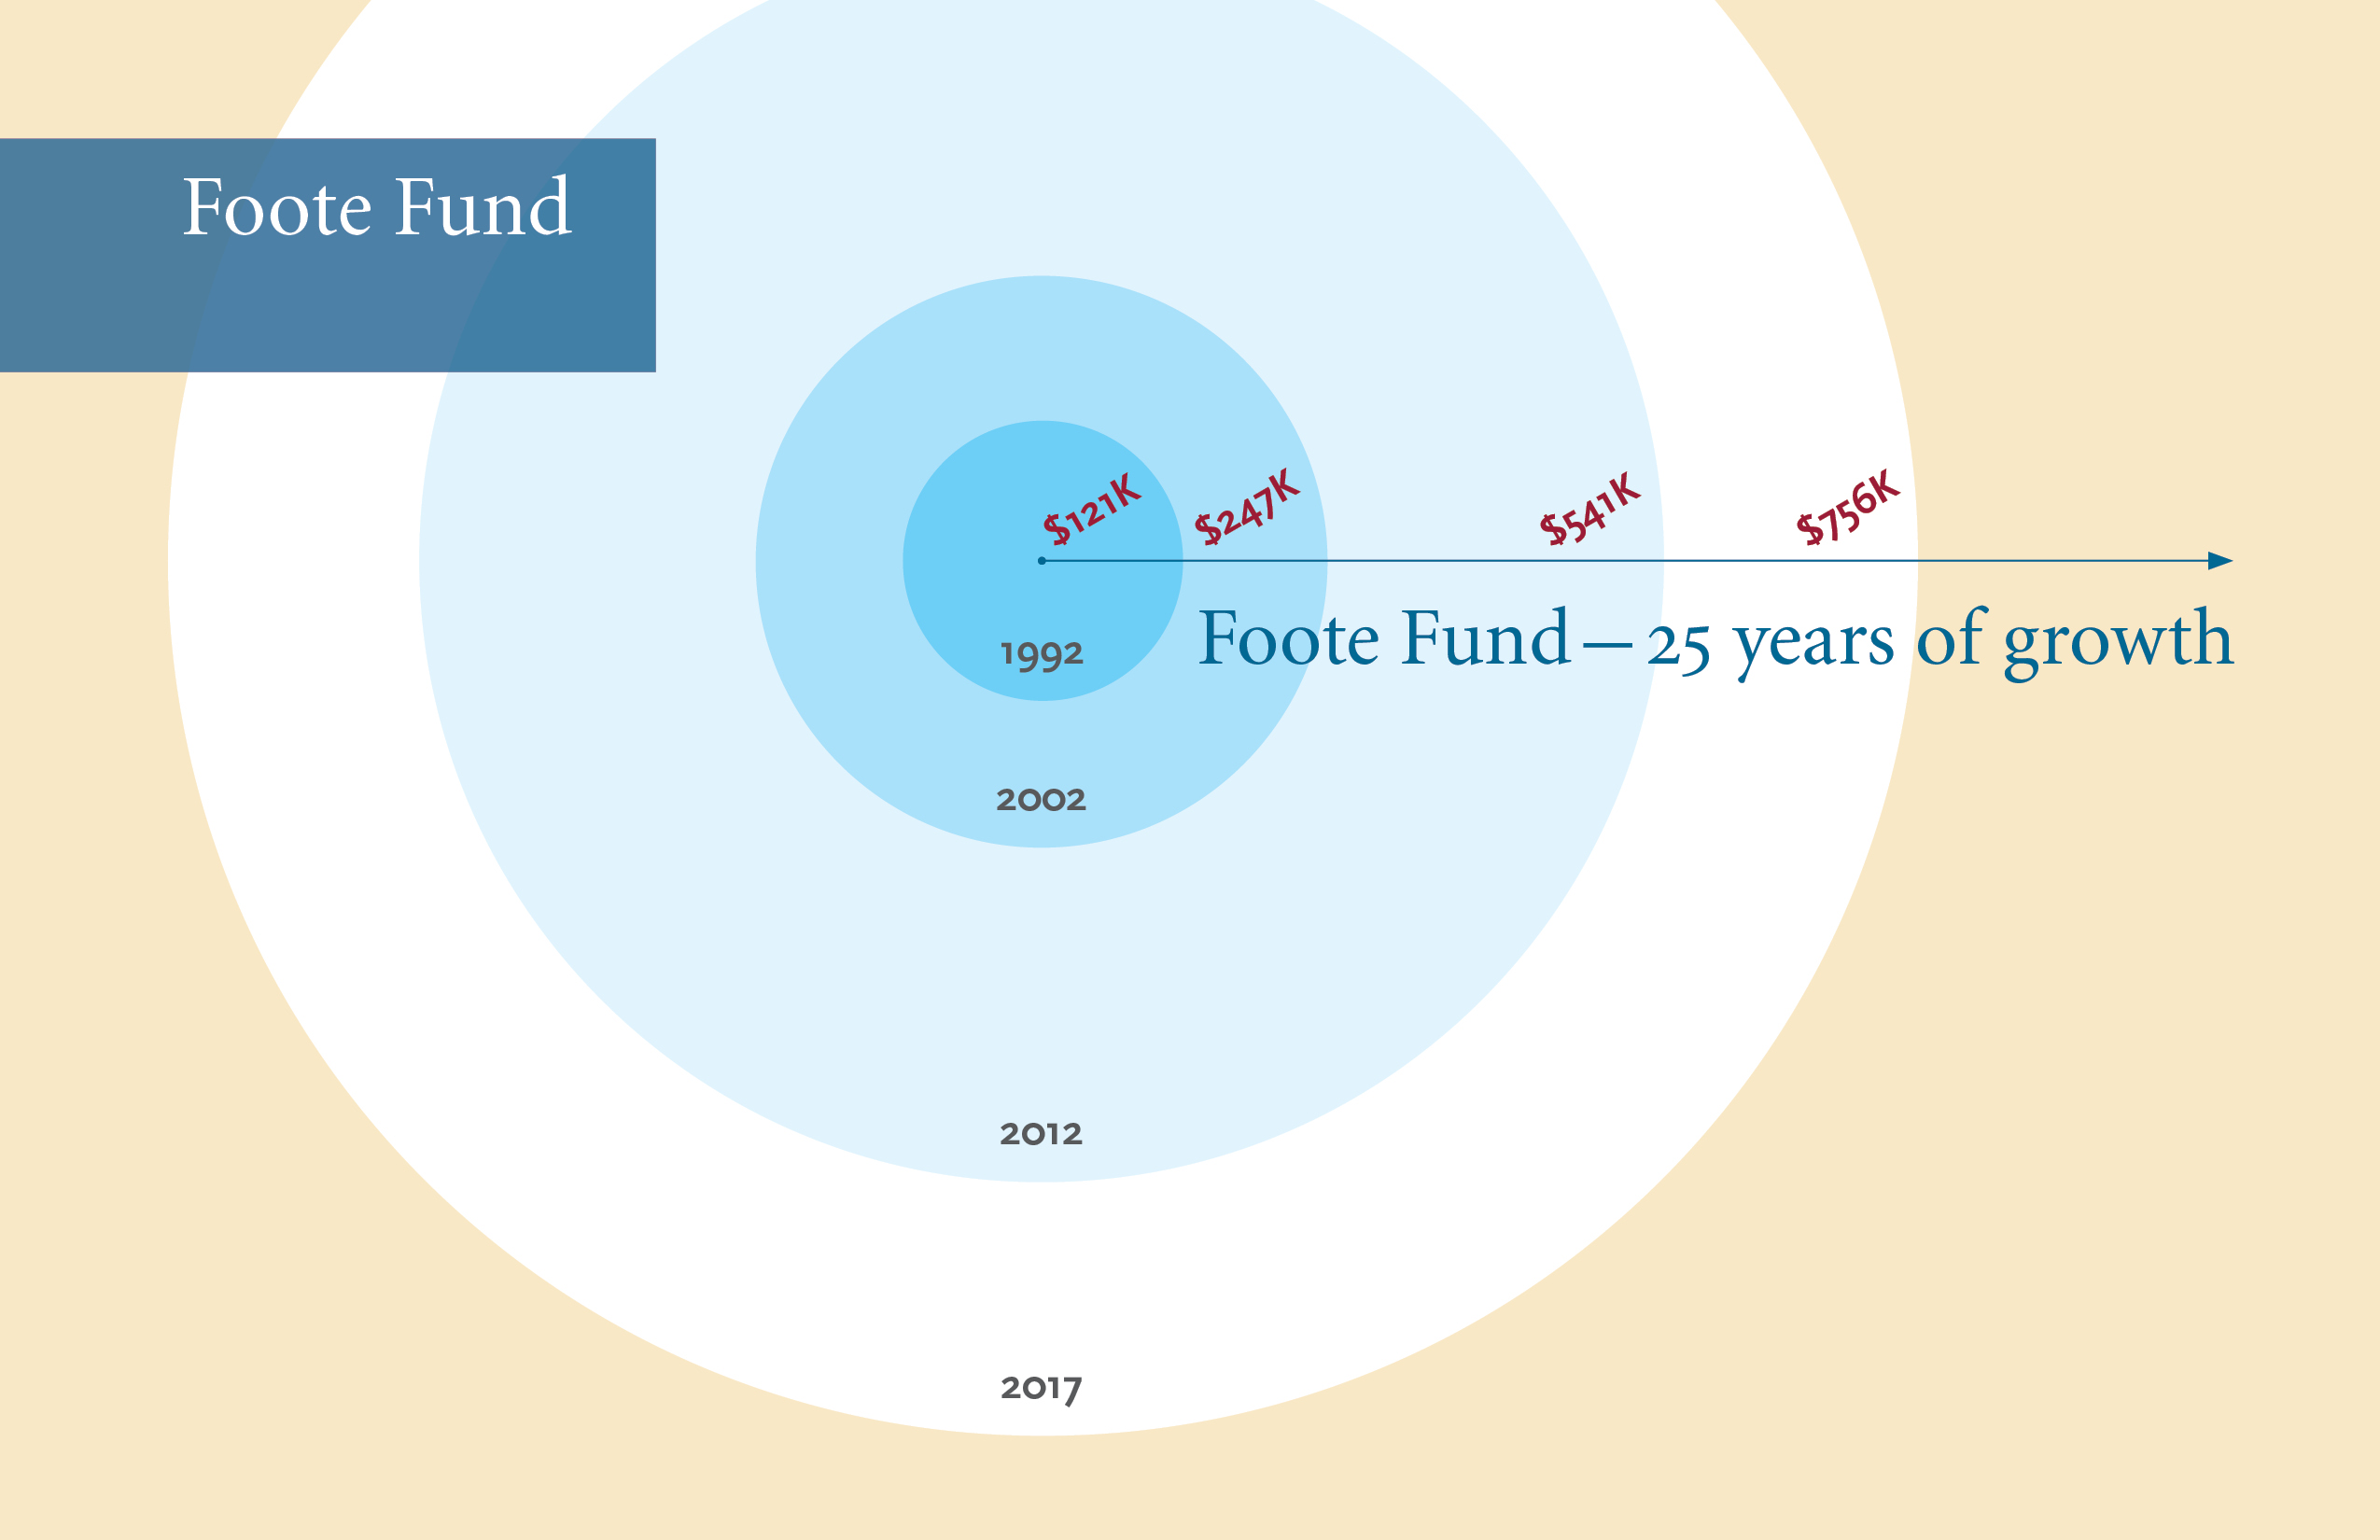 A diagram of the Foote Fund's growth over time